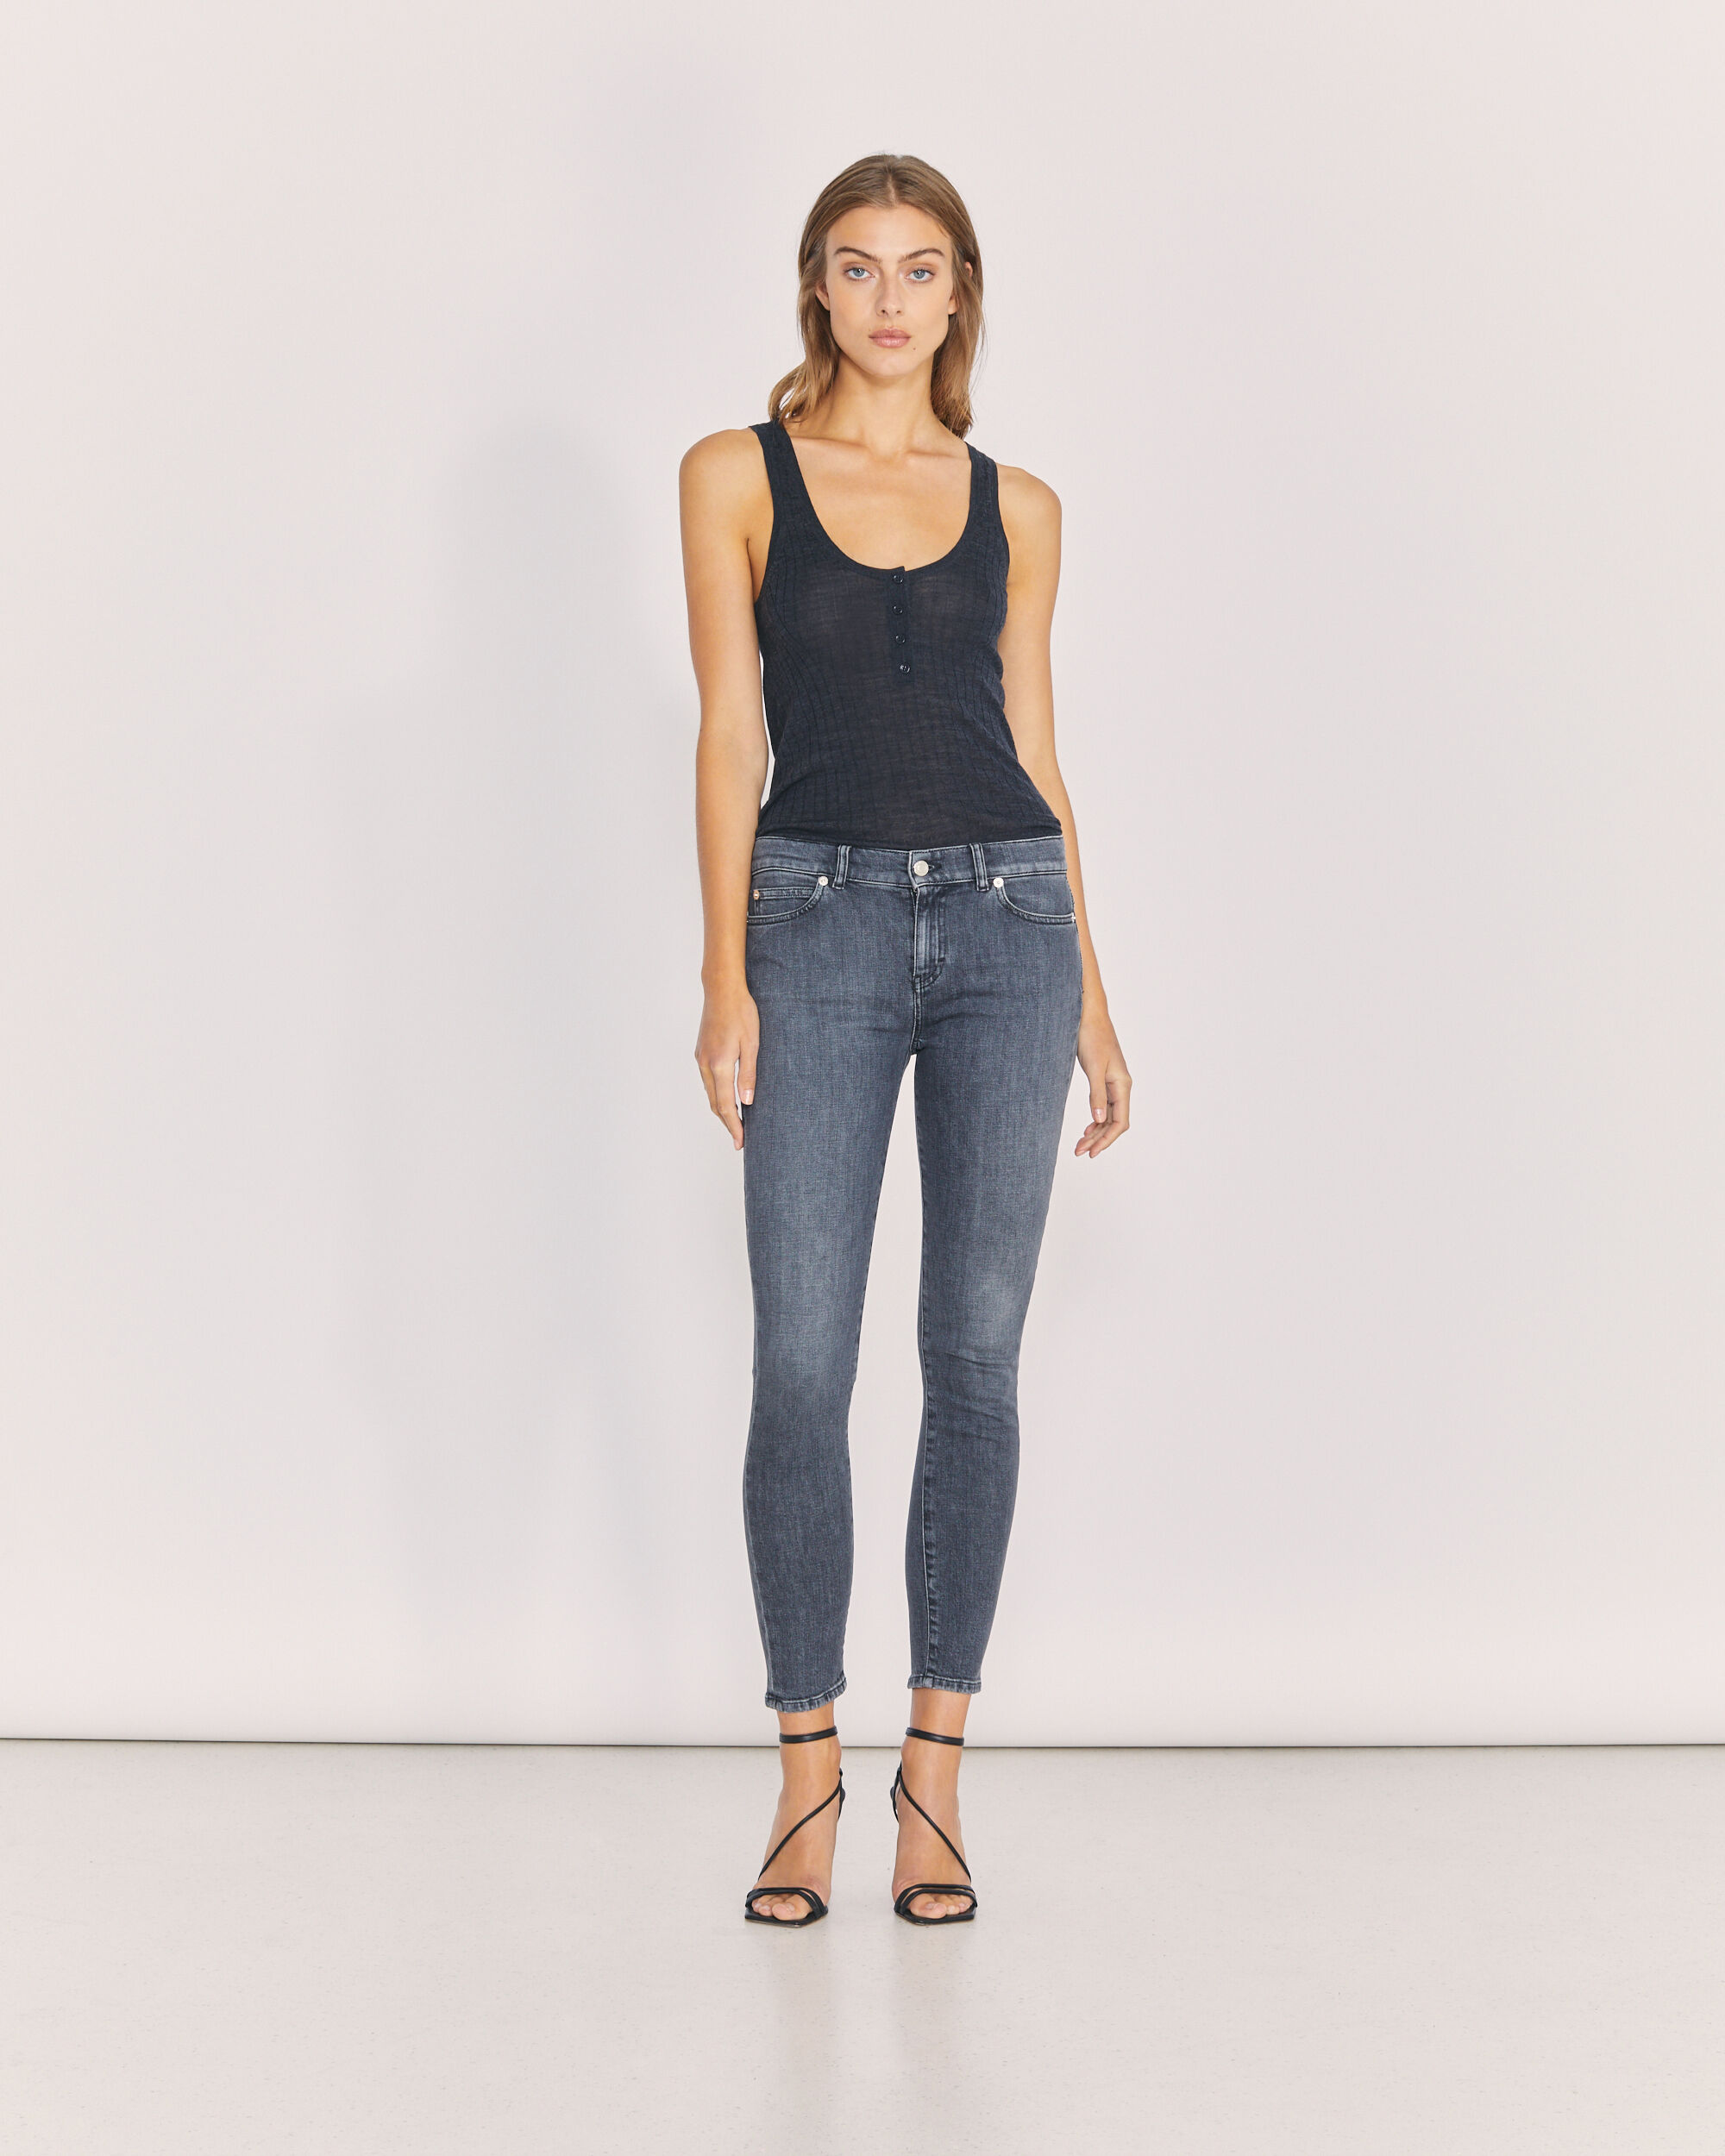 IRO TOBER JEANS,GREY WASHED